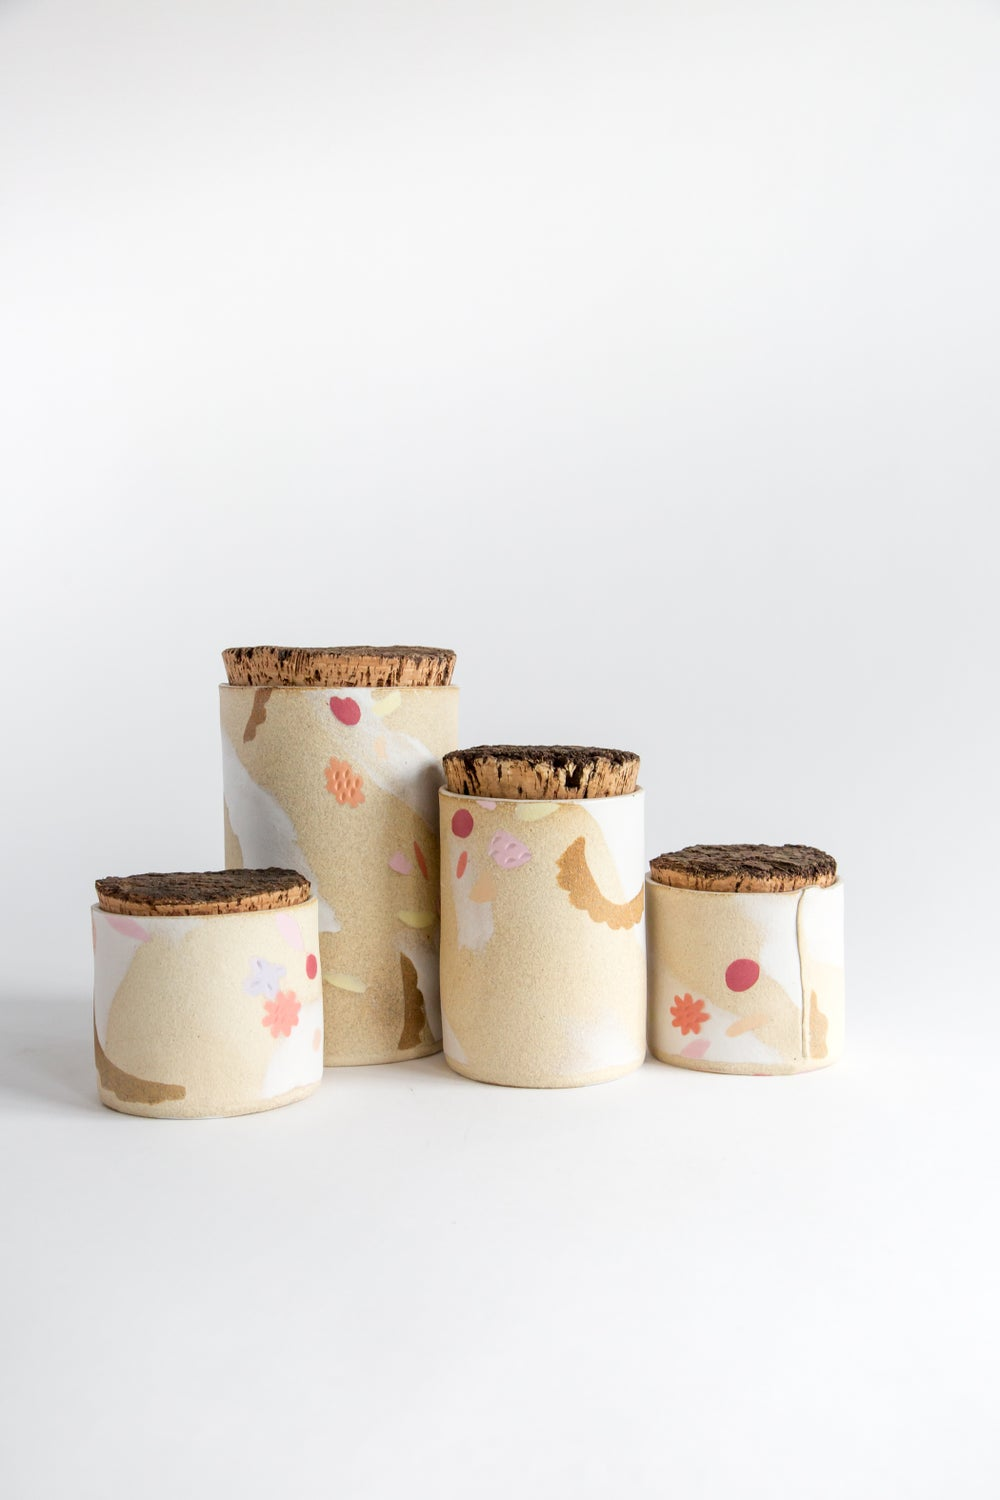 Image of Lemon Tart Porcelain Inlay Medium and Small Canister